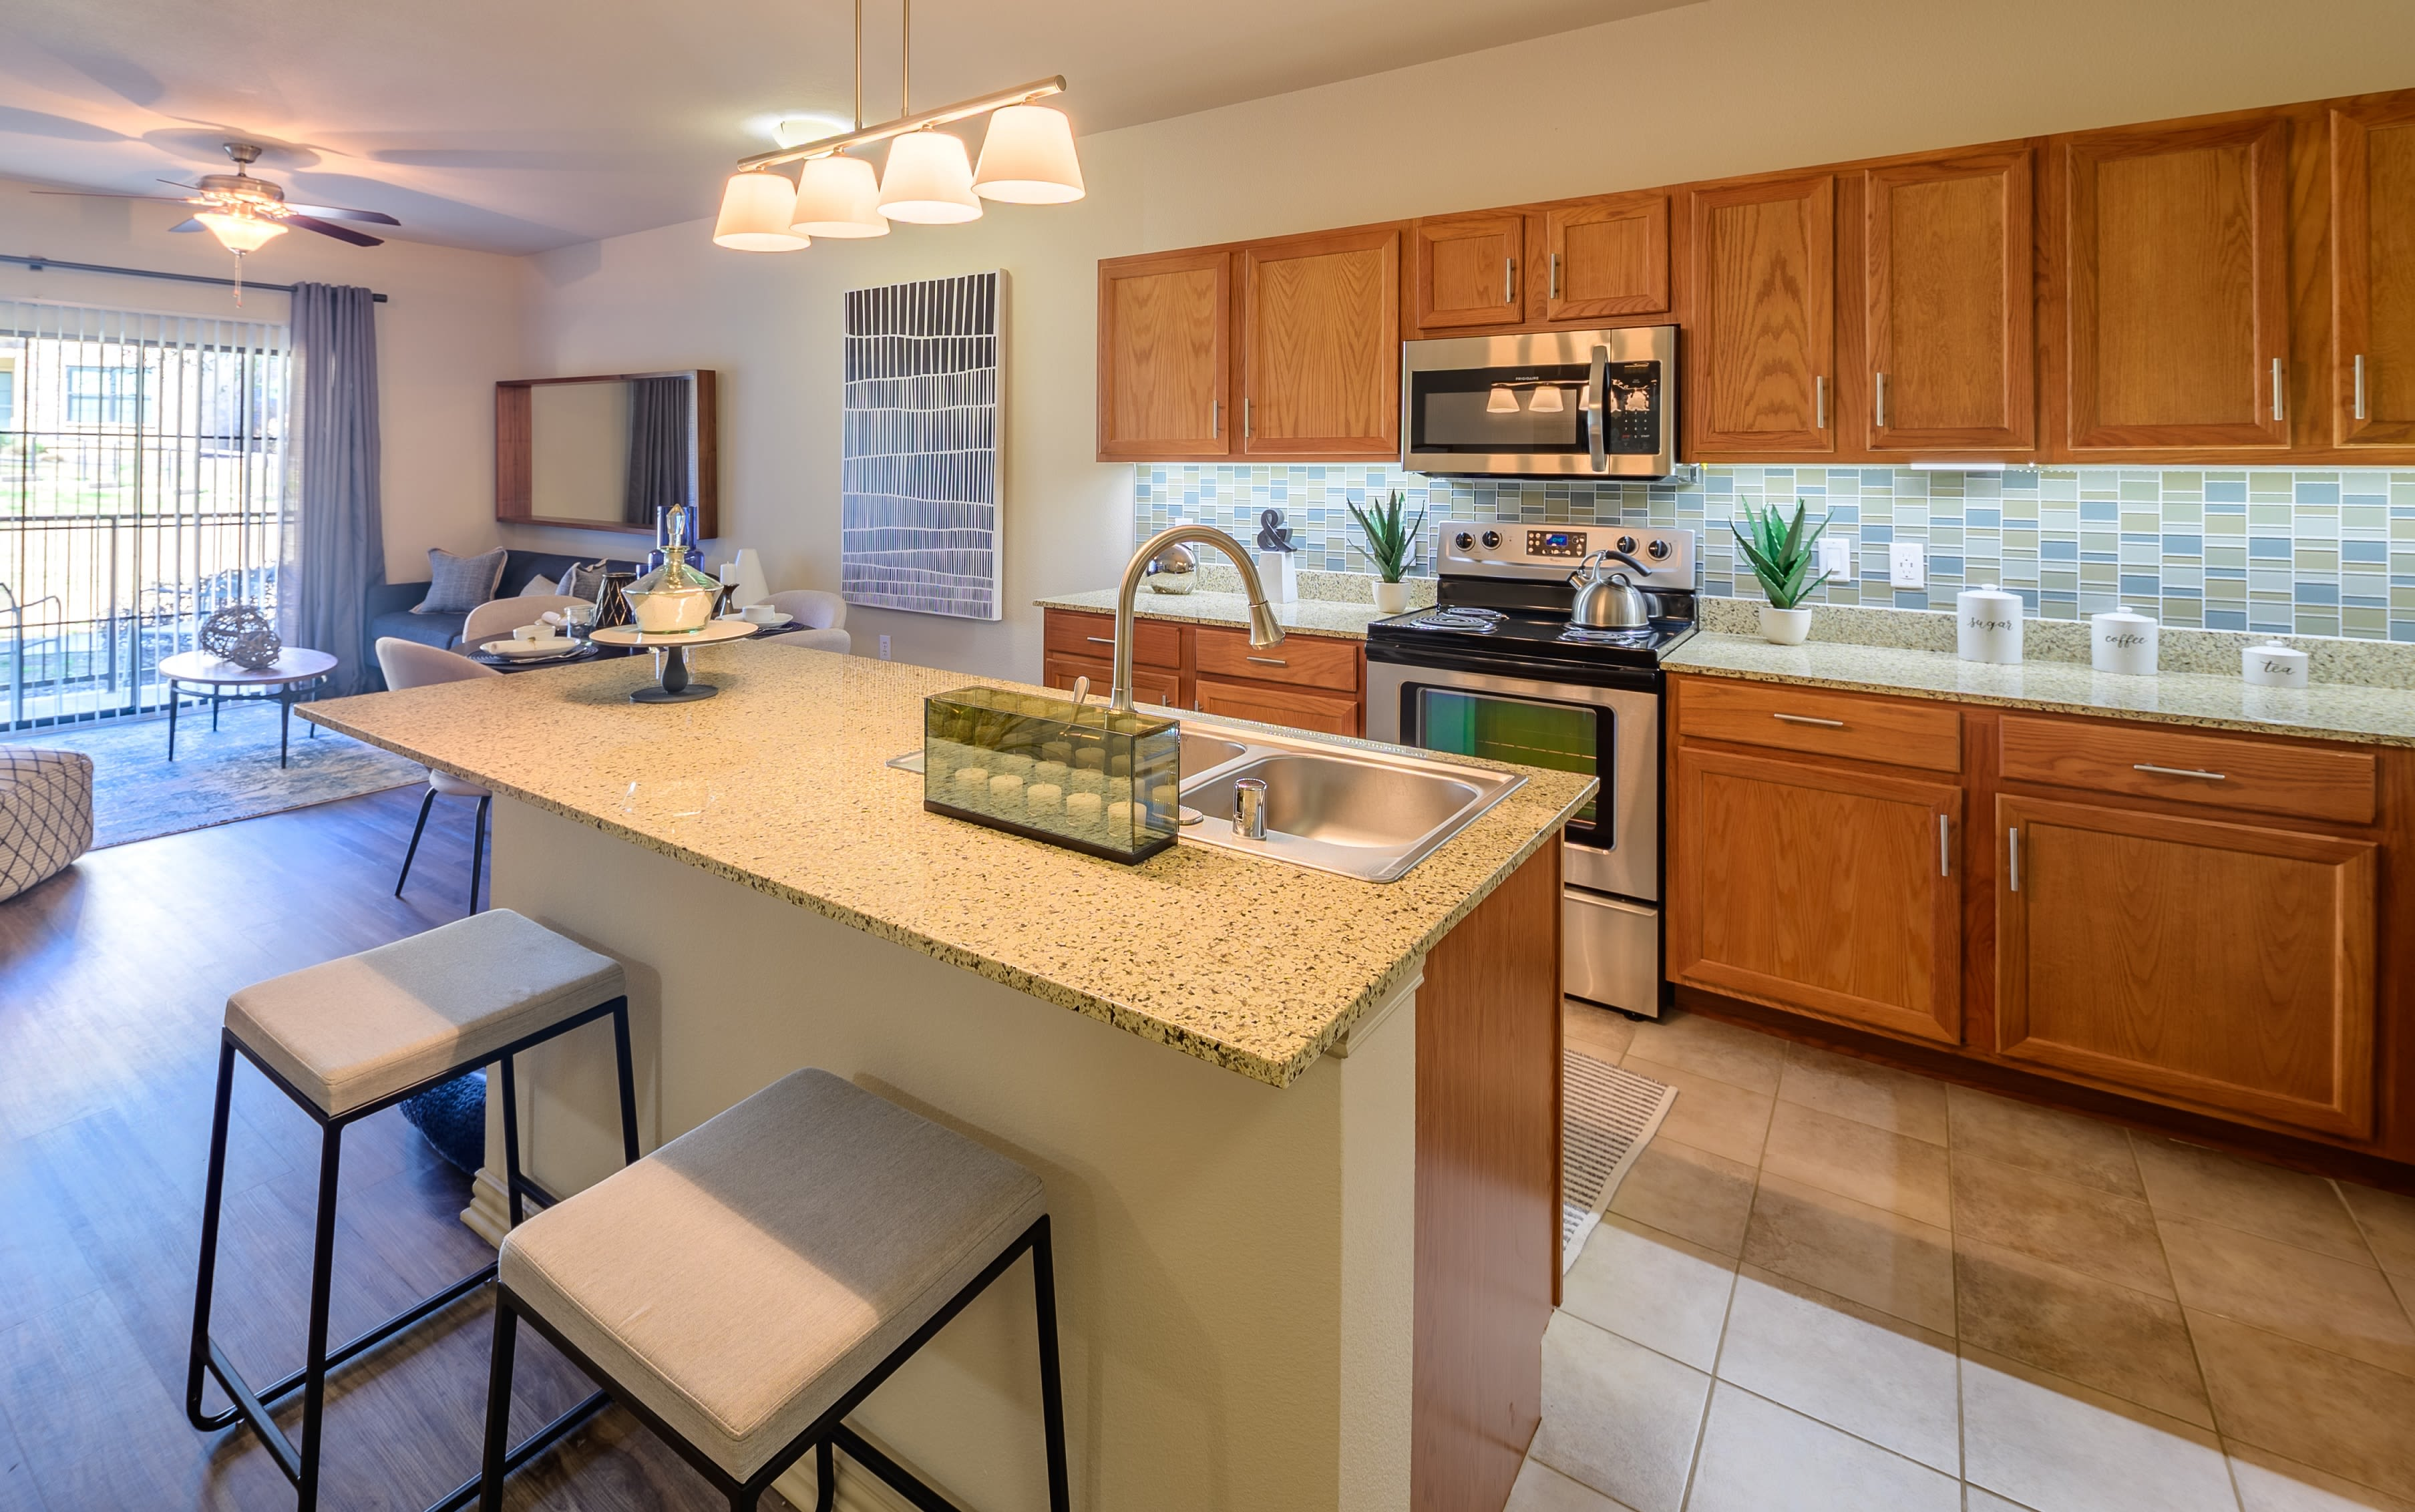 Kitchen with granite countertops and wood cabinets at Evolv in Mansfield, Texas